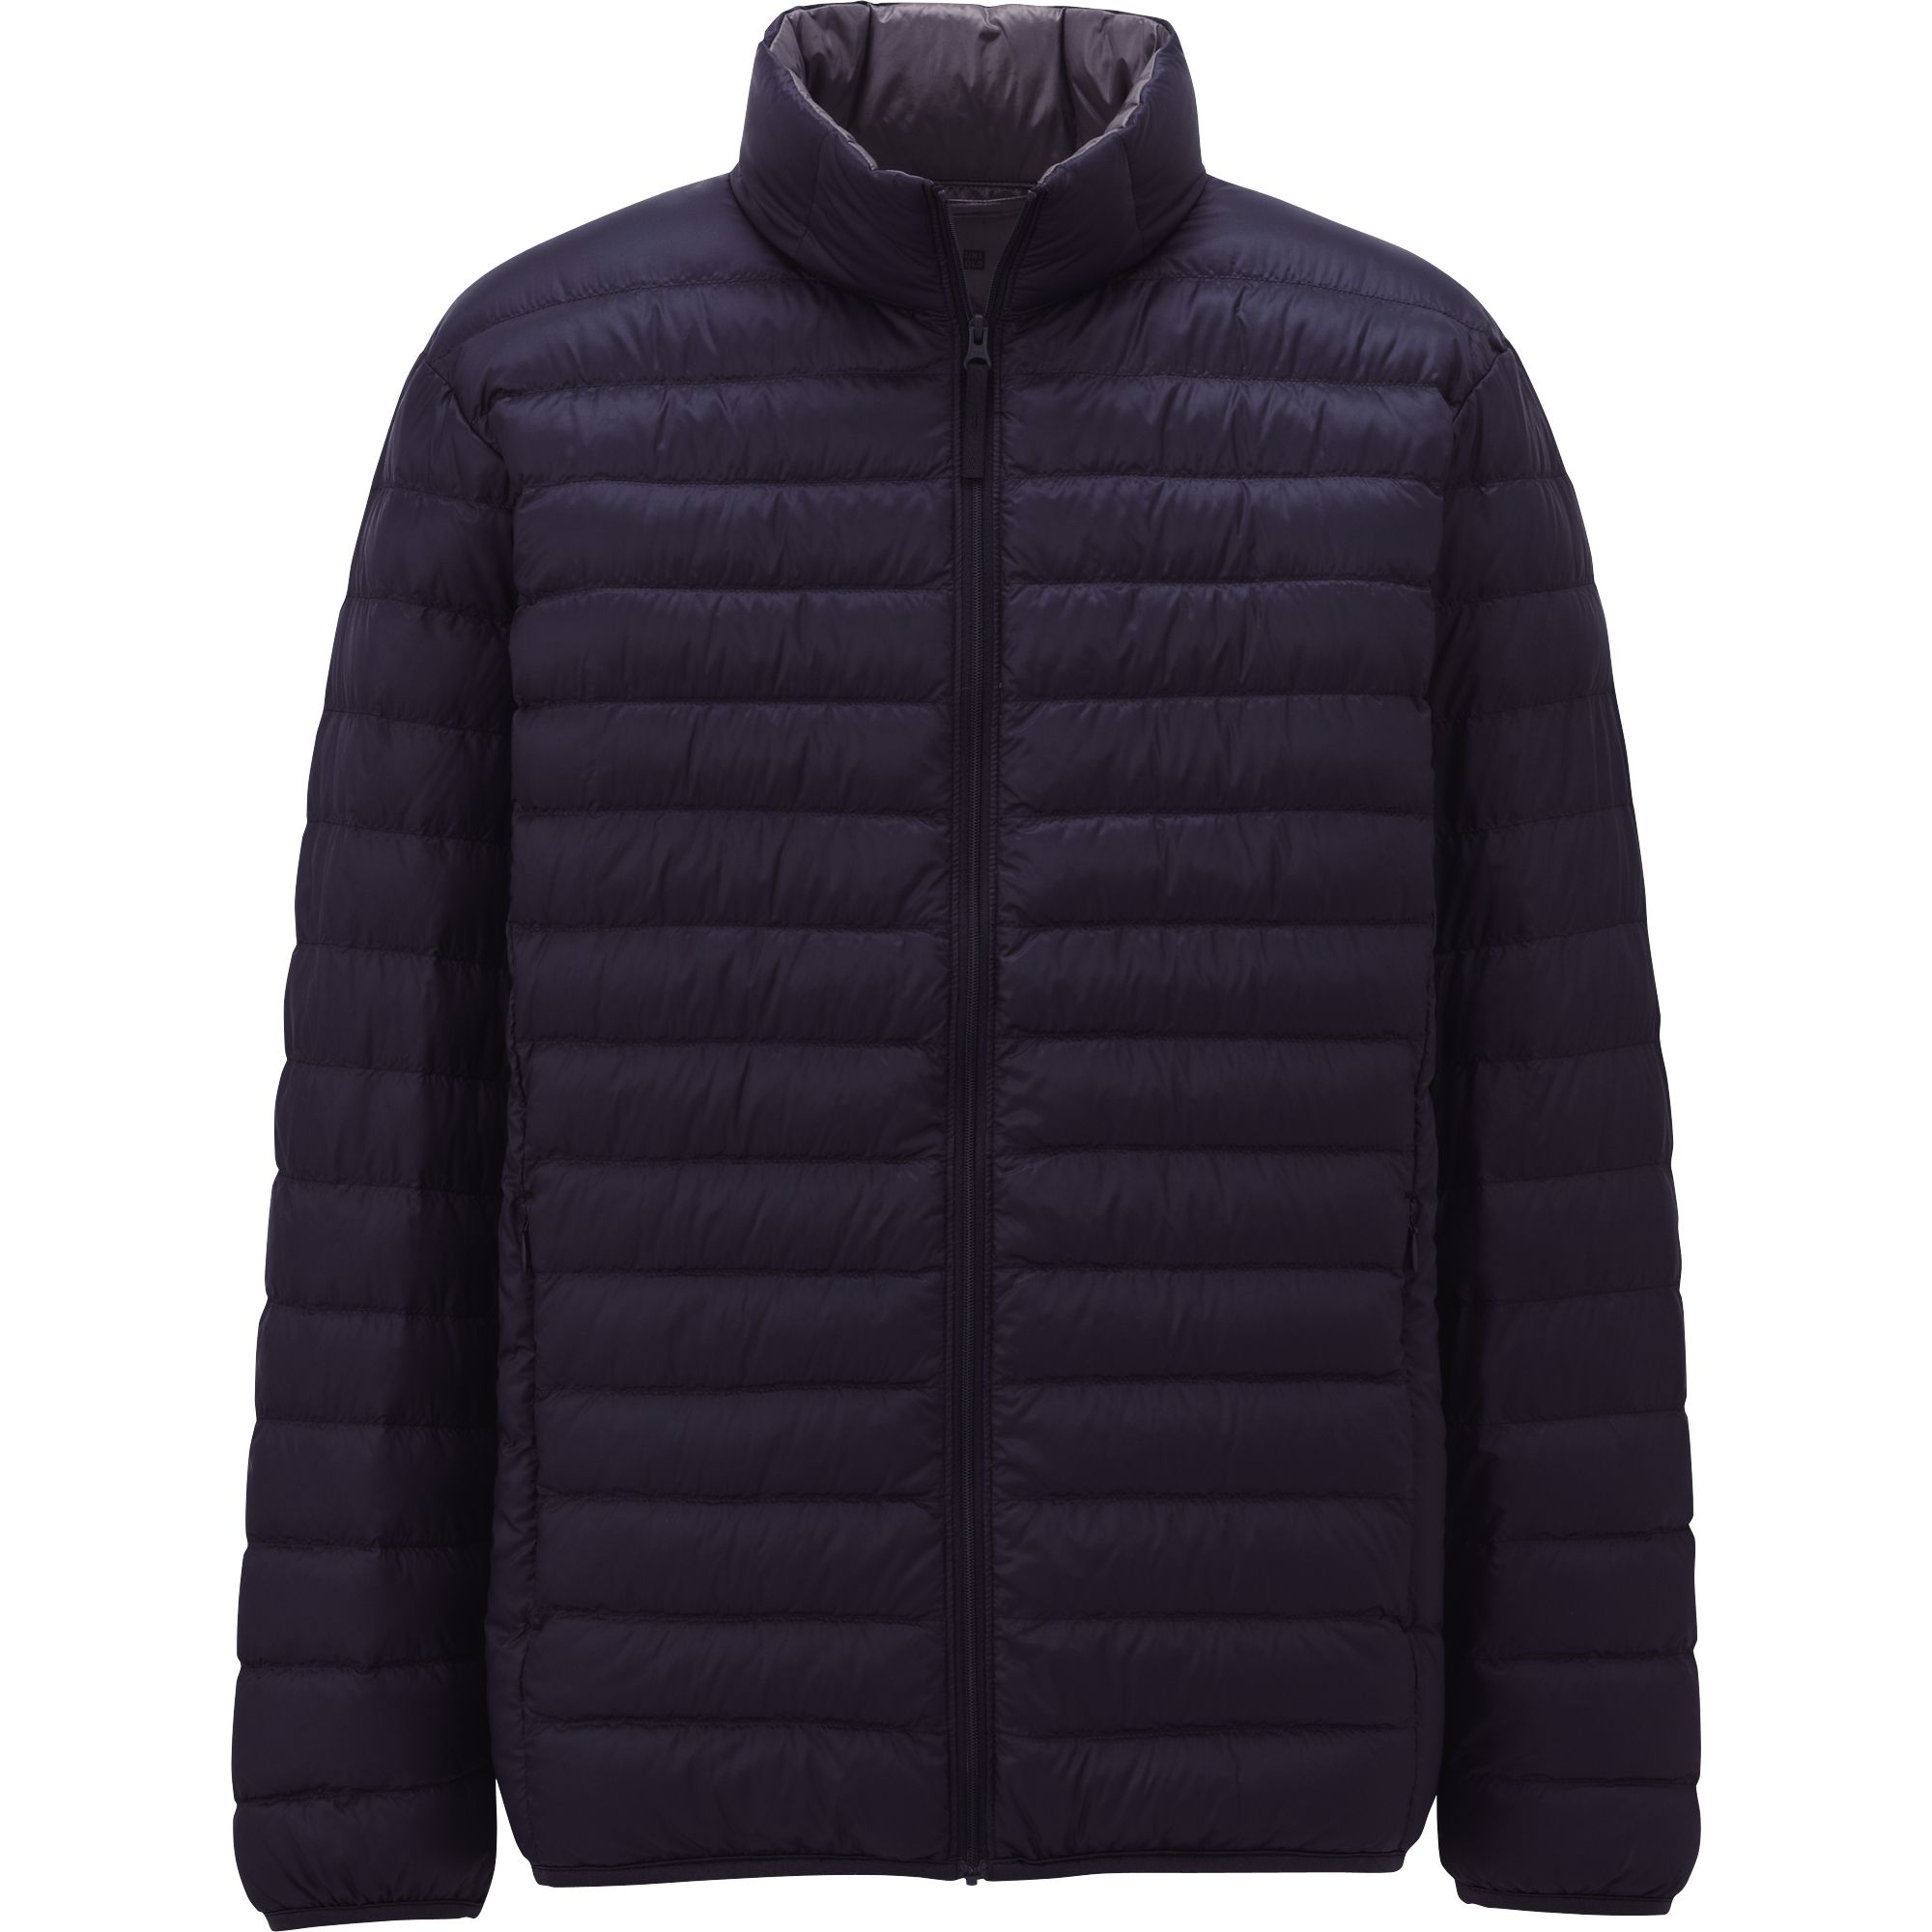 Uniqlo Ultra Light Down Jacket In Black For Men Blue Lyst